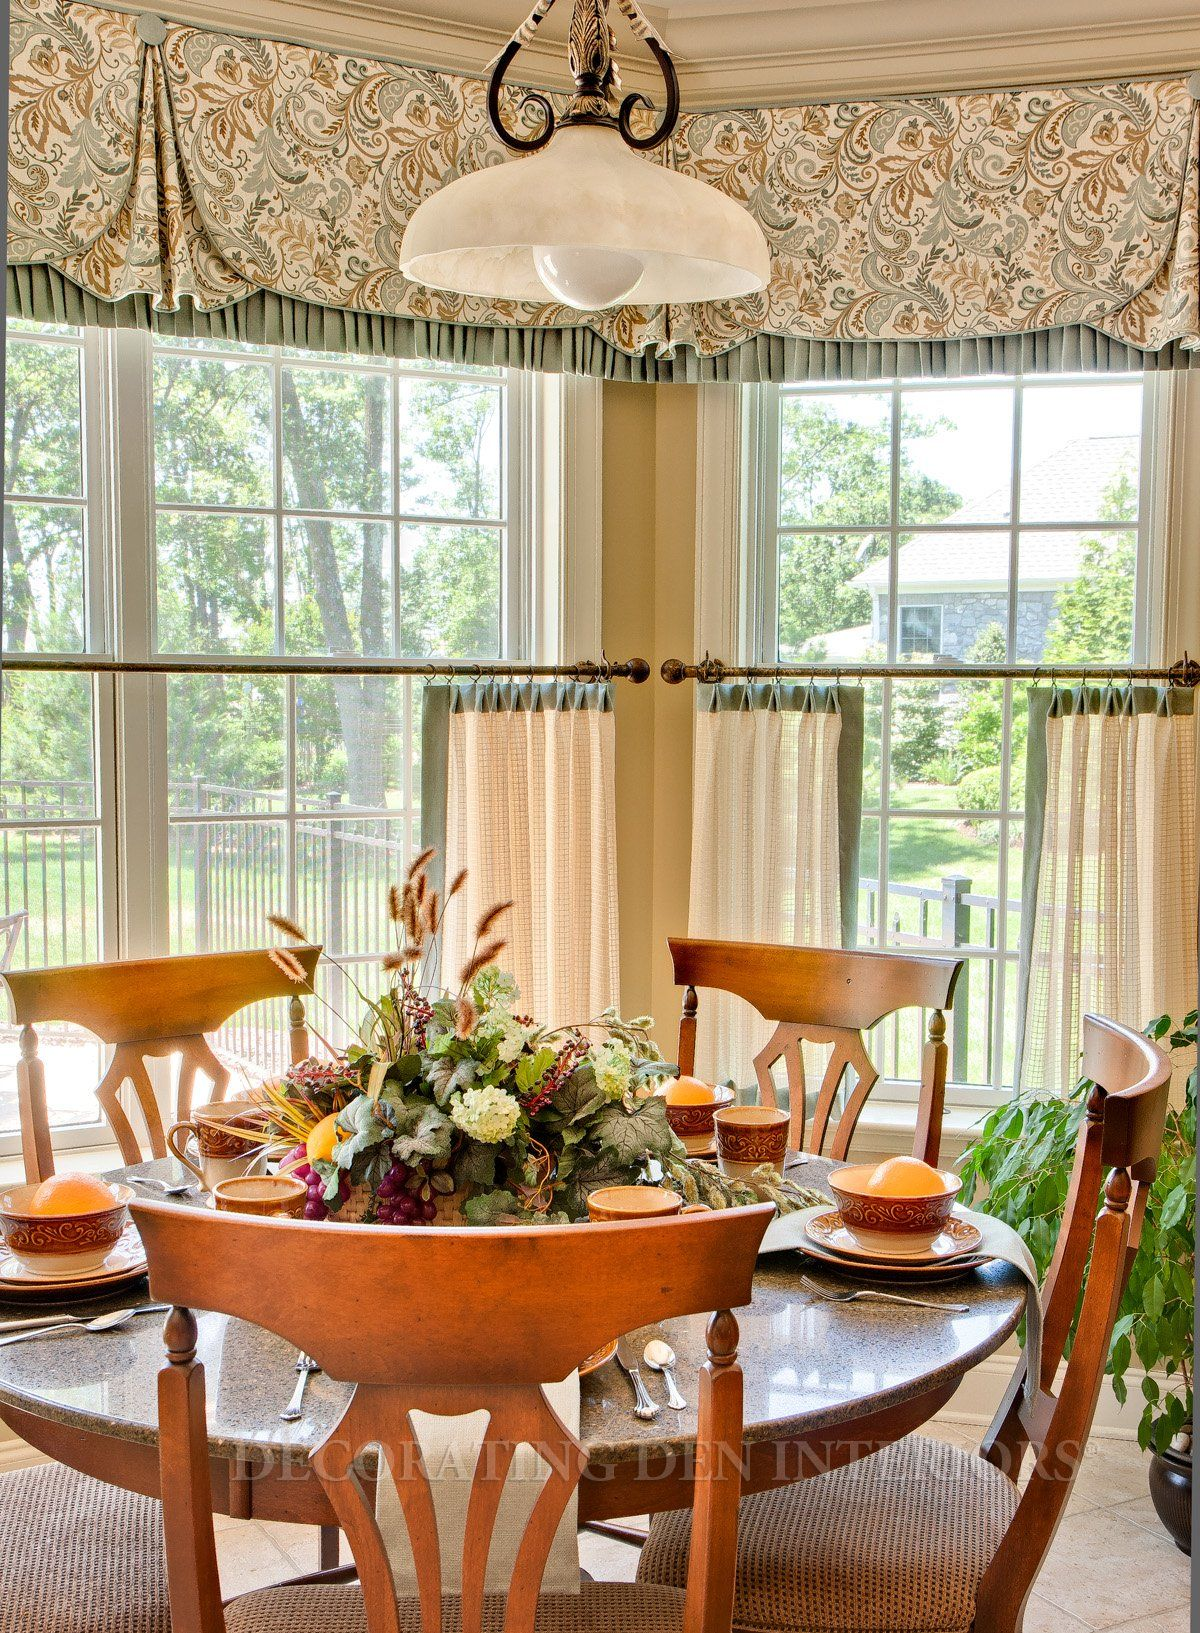 I Love This Dining Room It Has Such A Country Feel To It Kitchen Window Treatments Dining Room Window Treatments Dining Room Windows